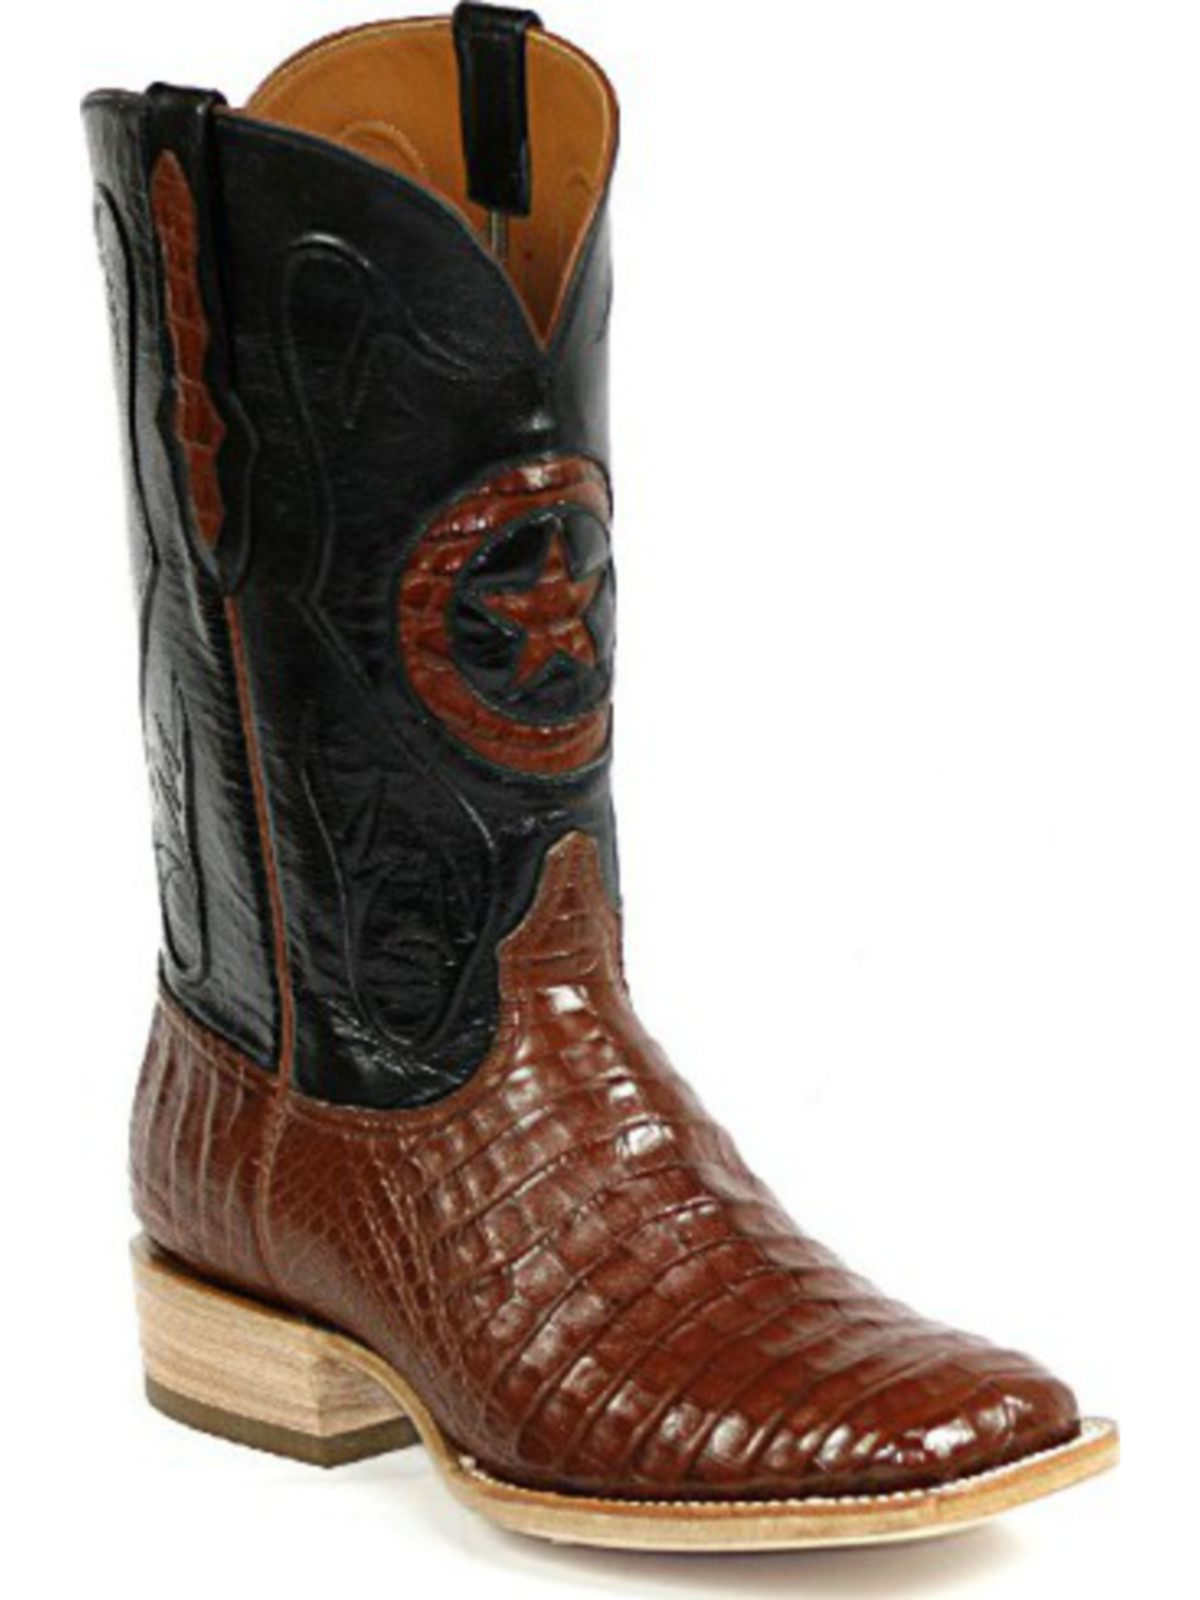 Bootamerica Black Jack Boots Lone Star Inlay Caiman